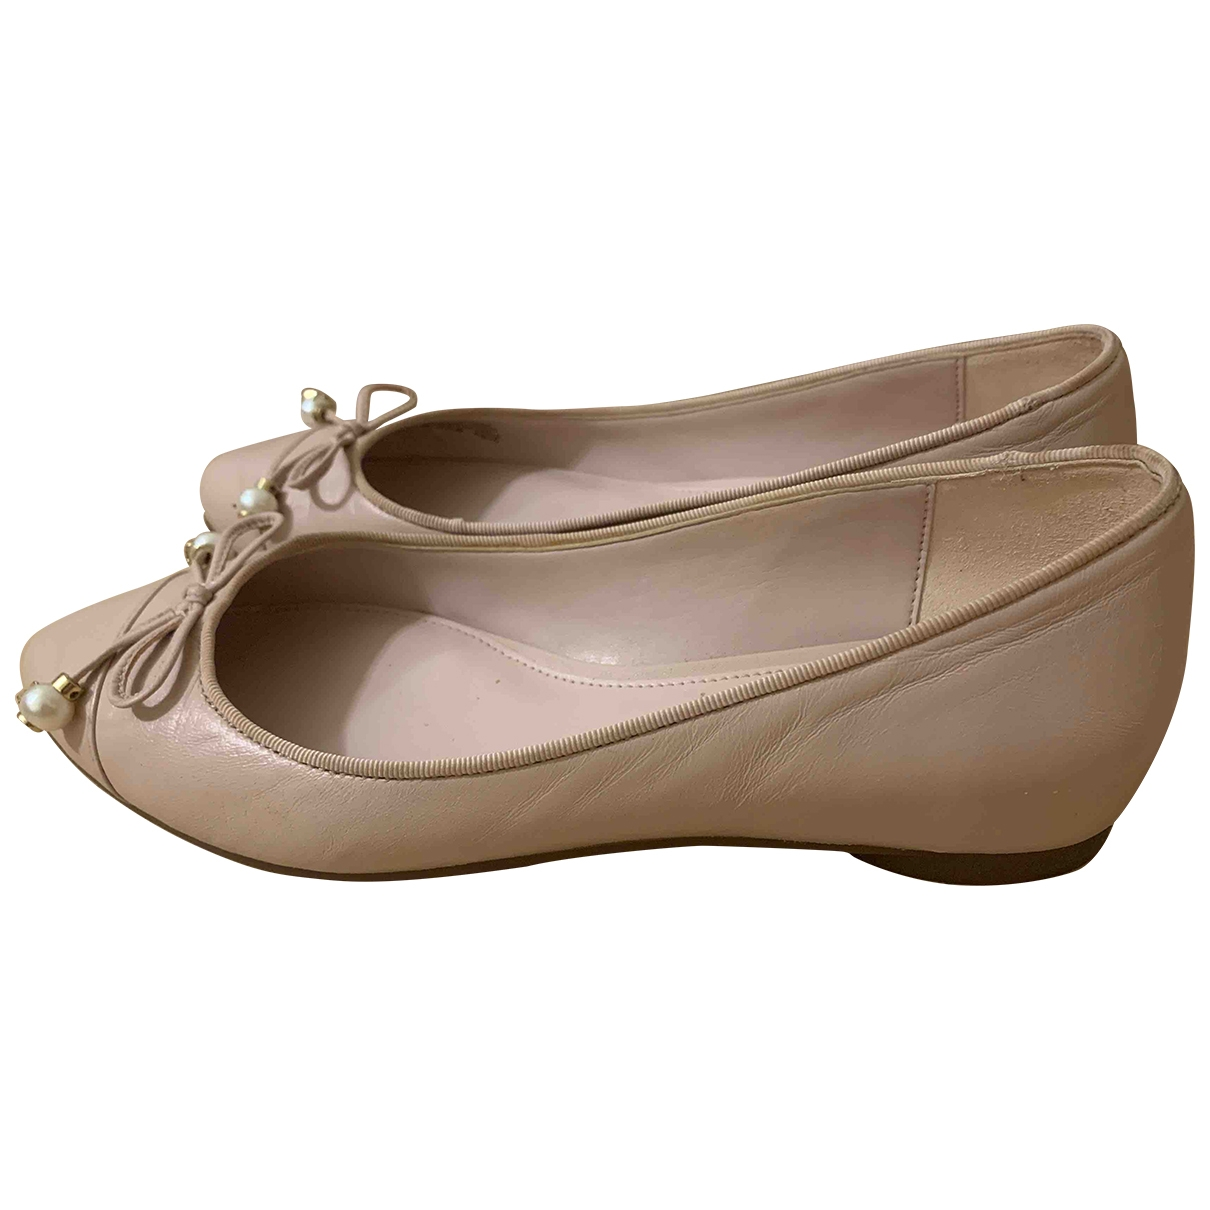 Michael Kors \N Pink Leather Ballet flats for Women 35.5 EU